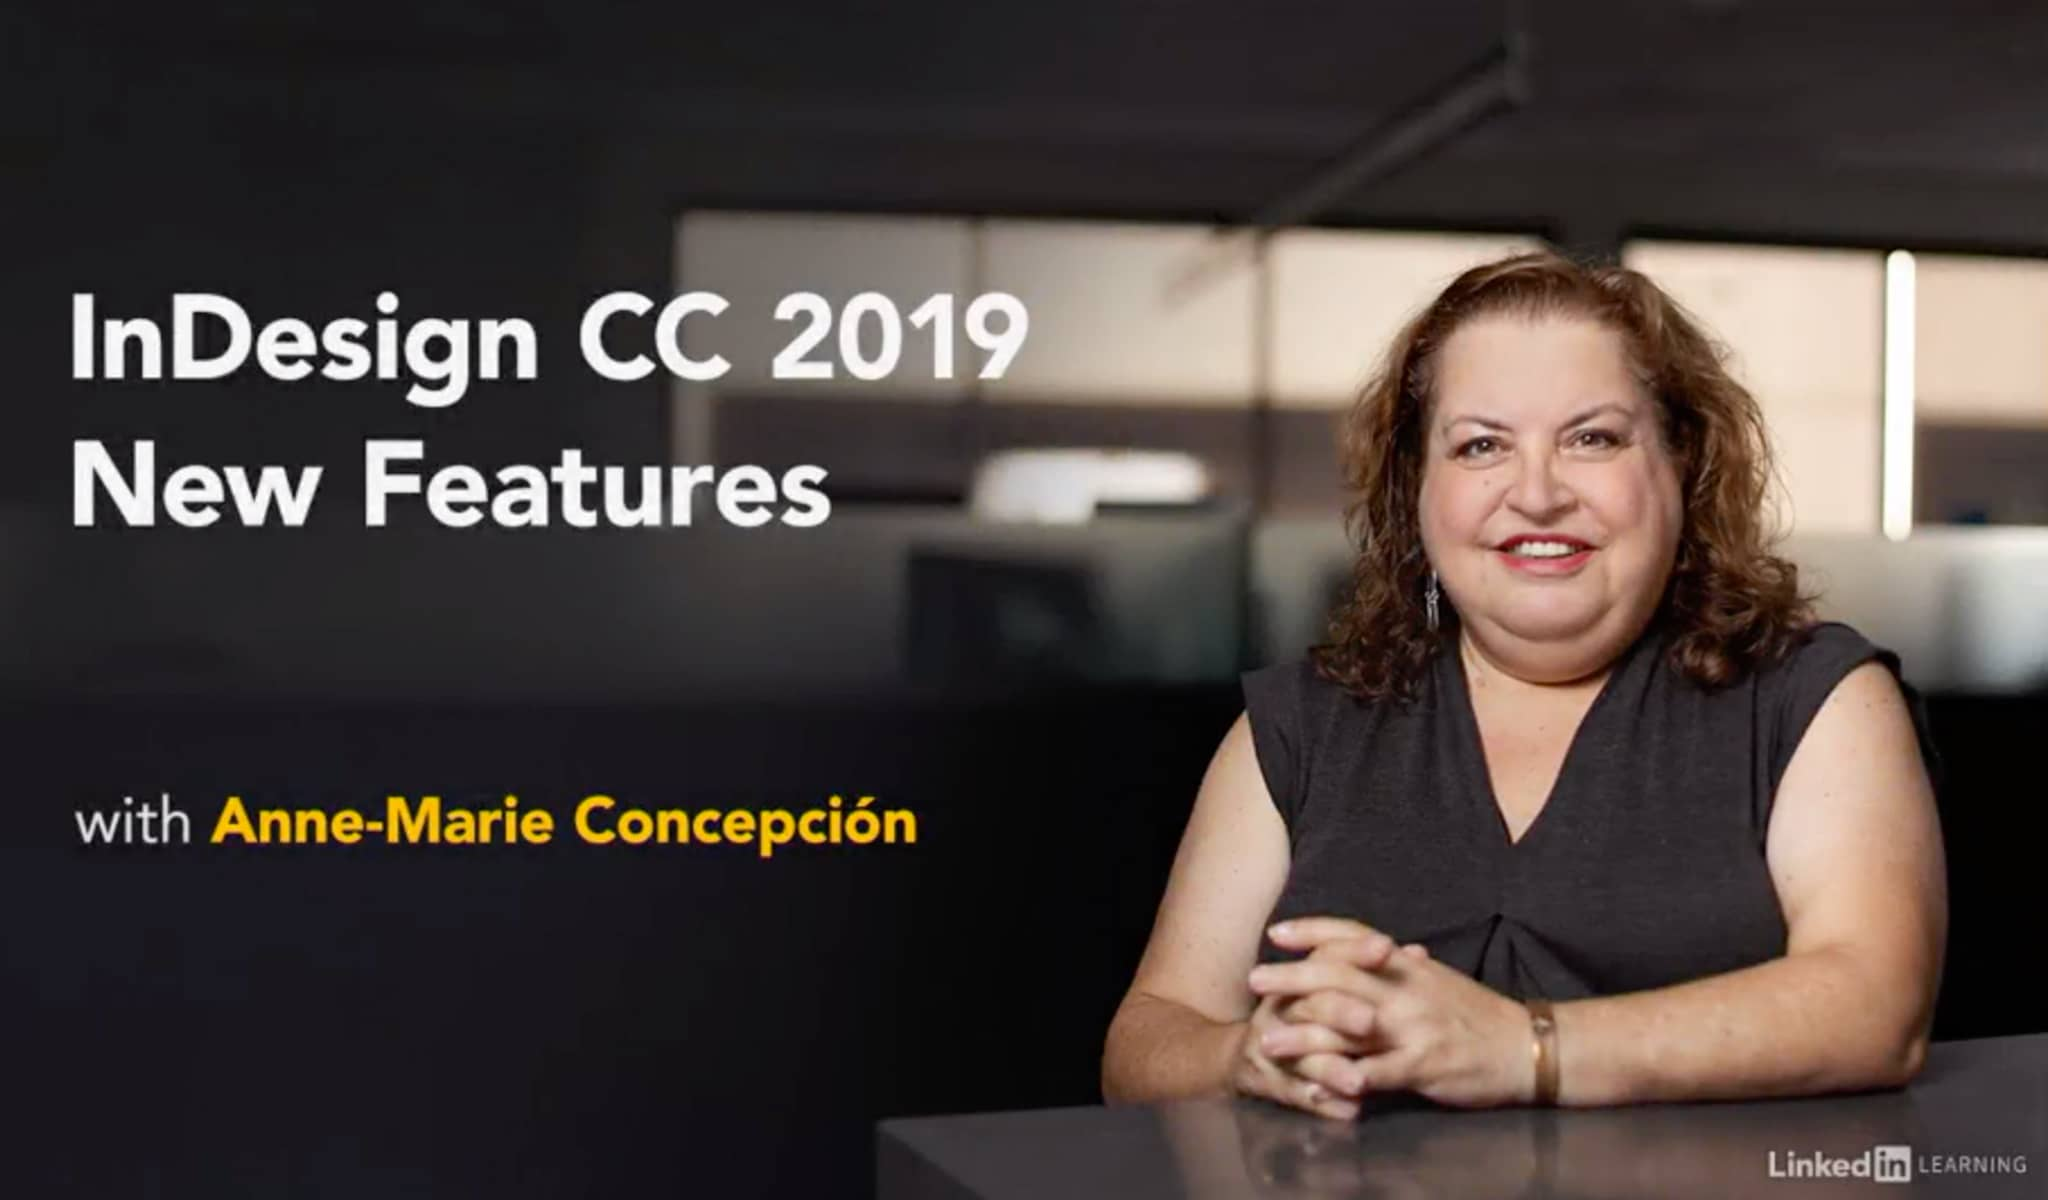 InDesign CC 2019 New Features by Anne-Marie Concepción